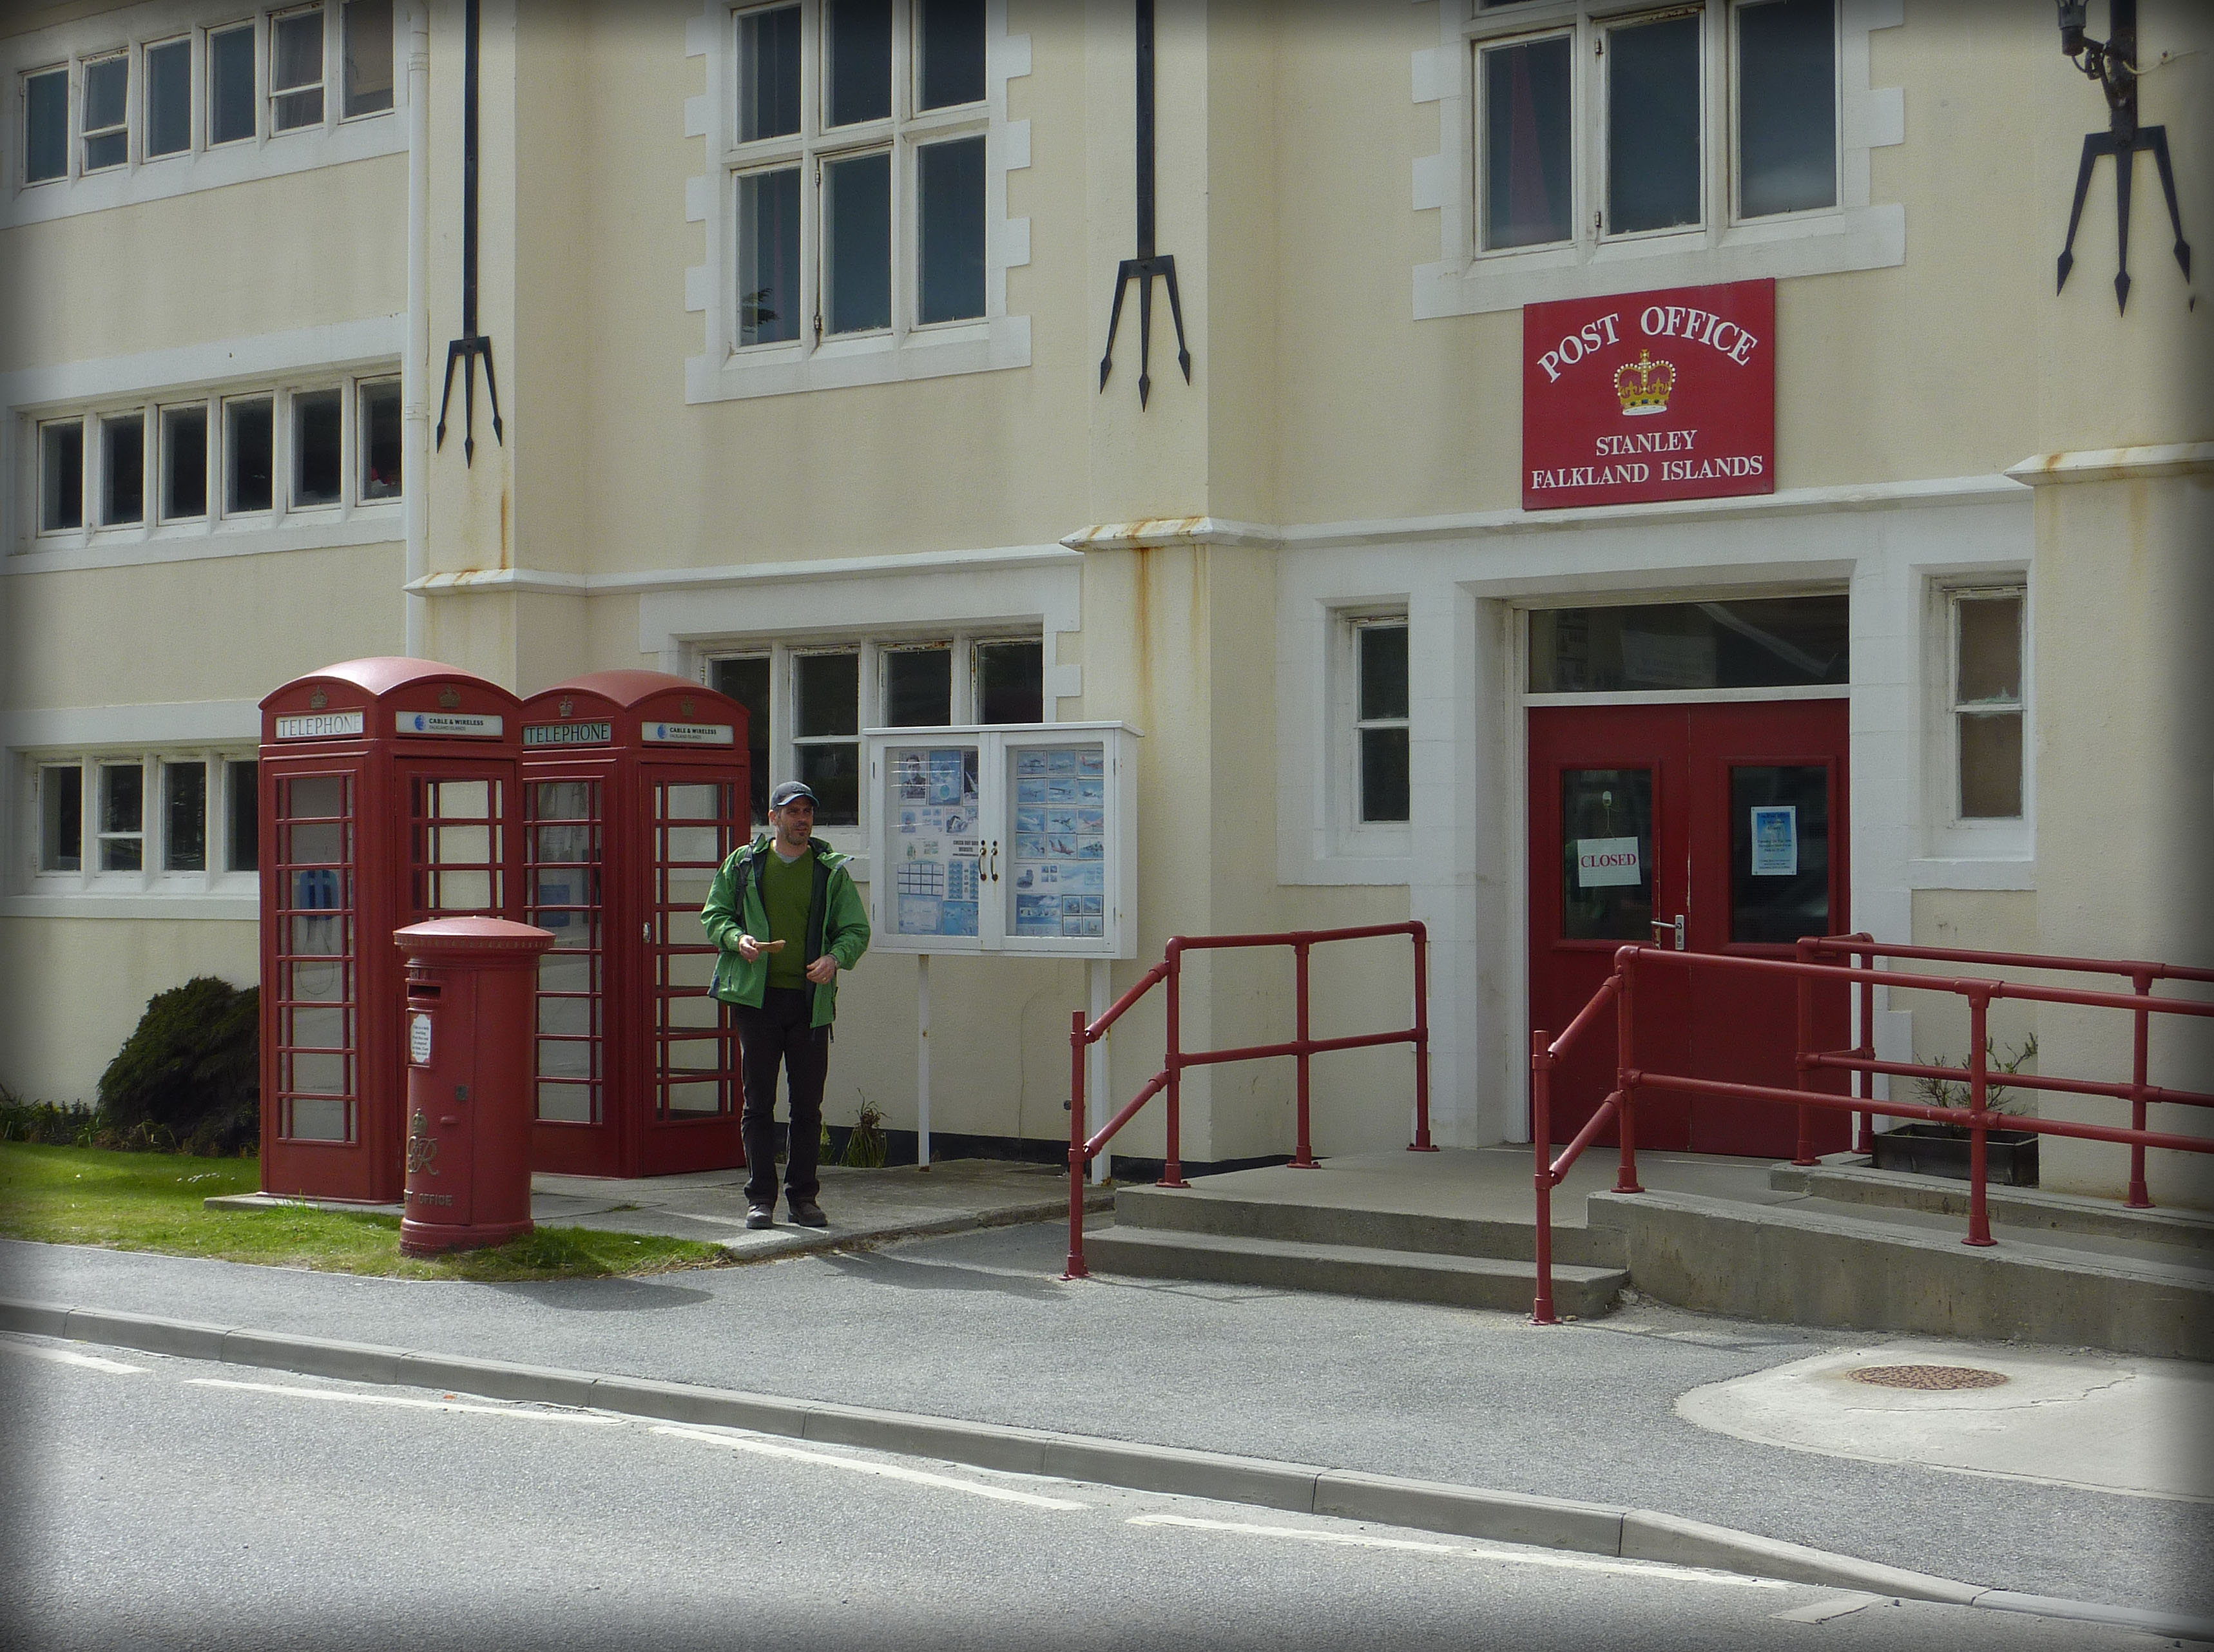 Post office at Port Stanley, Falkland Islands. Photo taken on December 26, 2010.